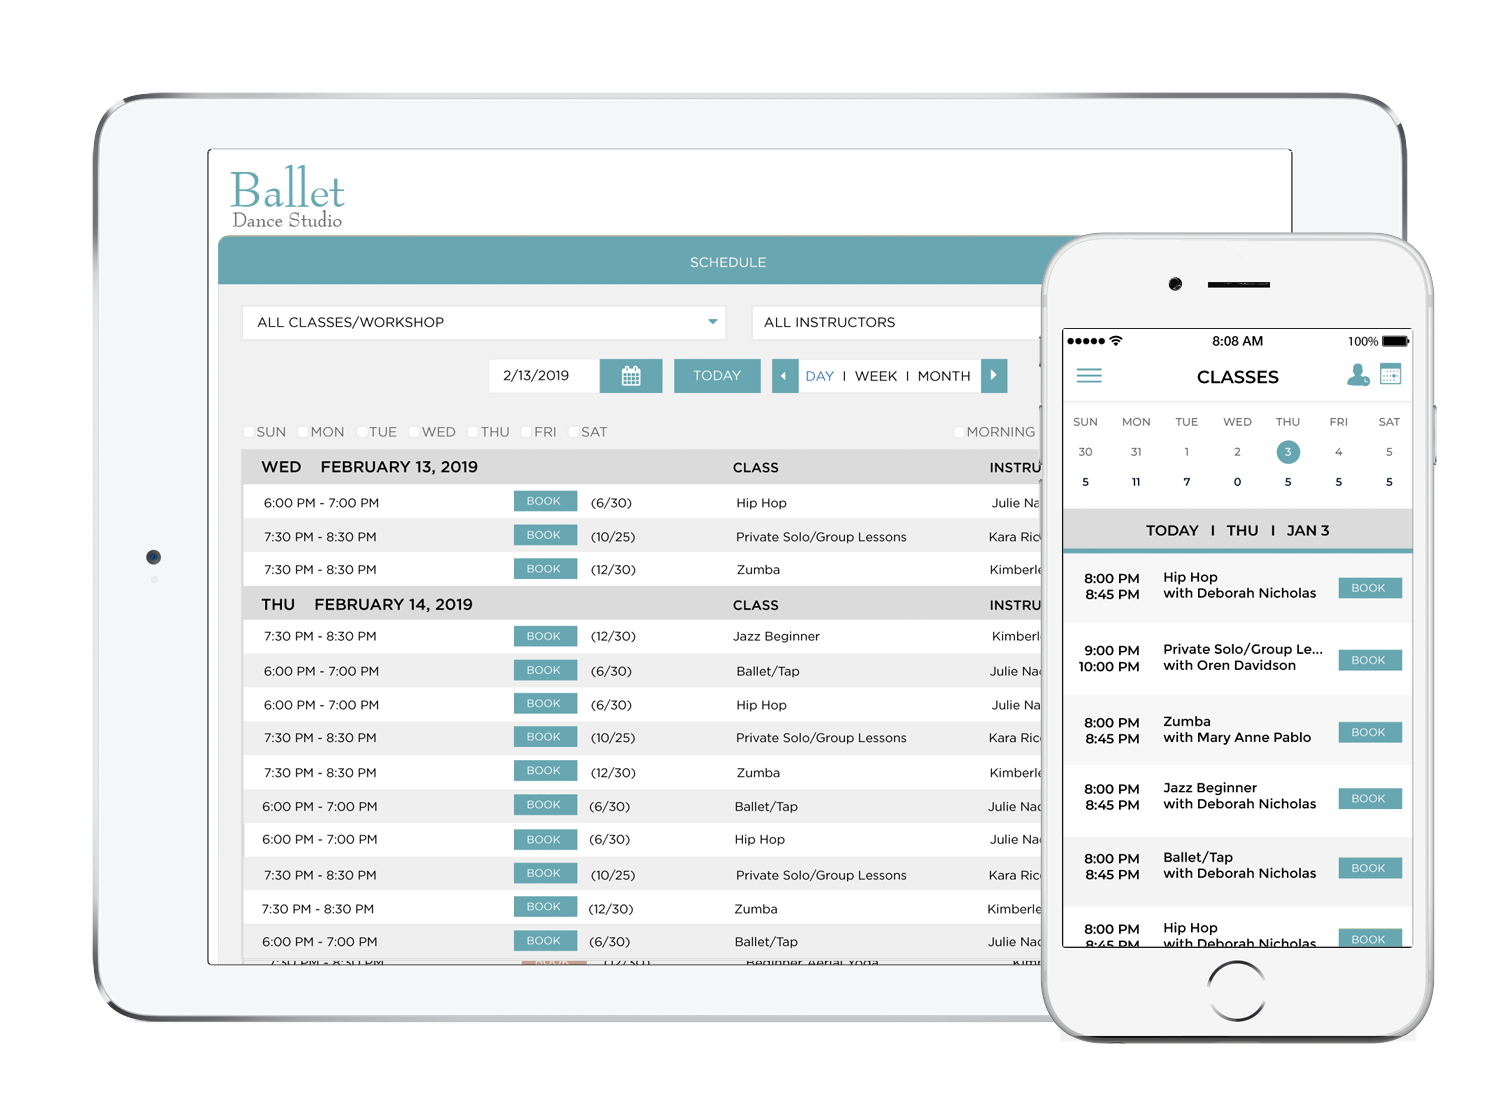 Dance Studio Management Software - Scheduling, Appointments